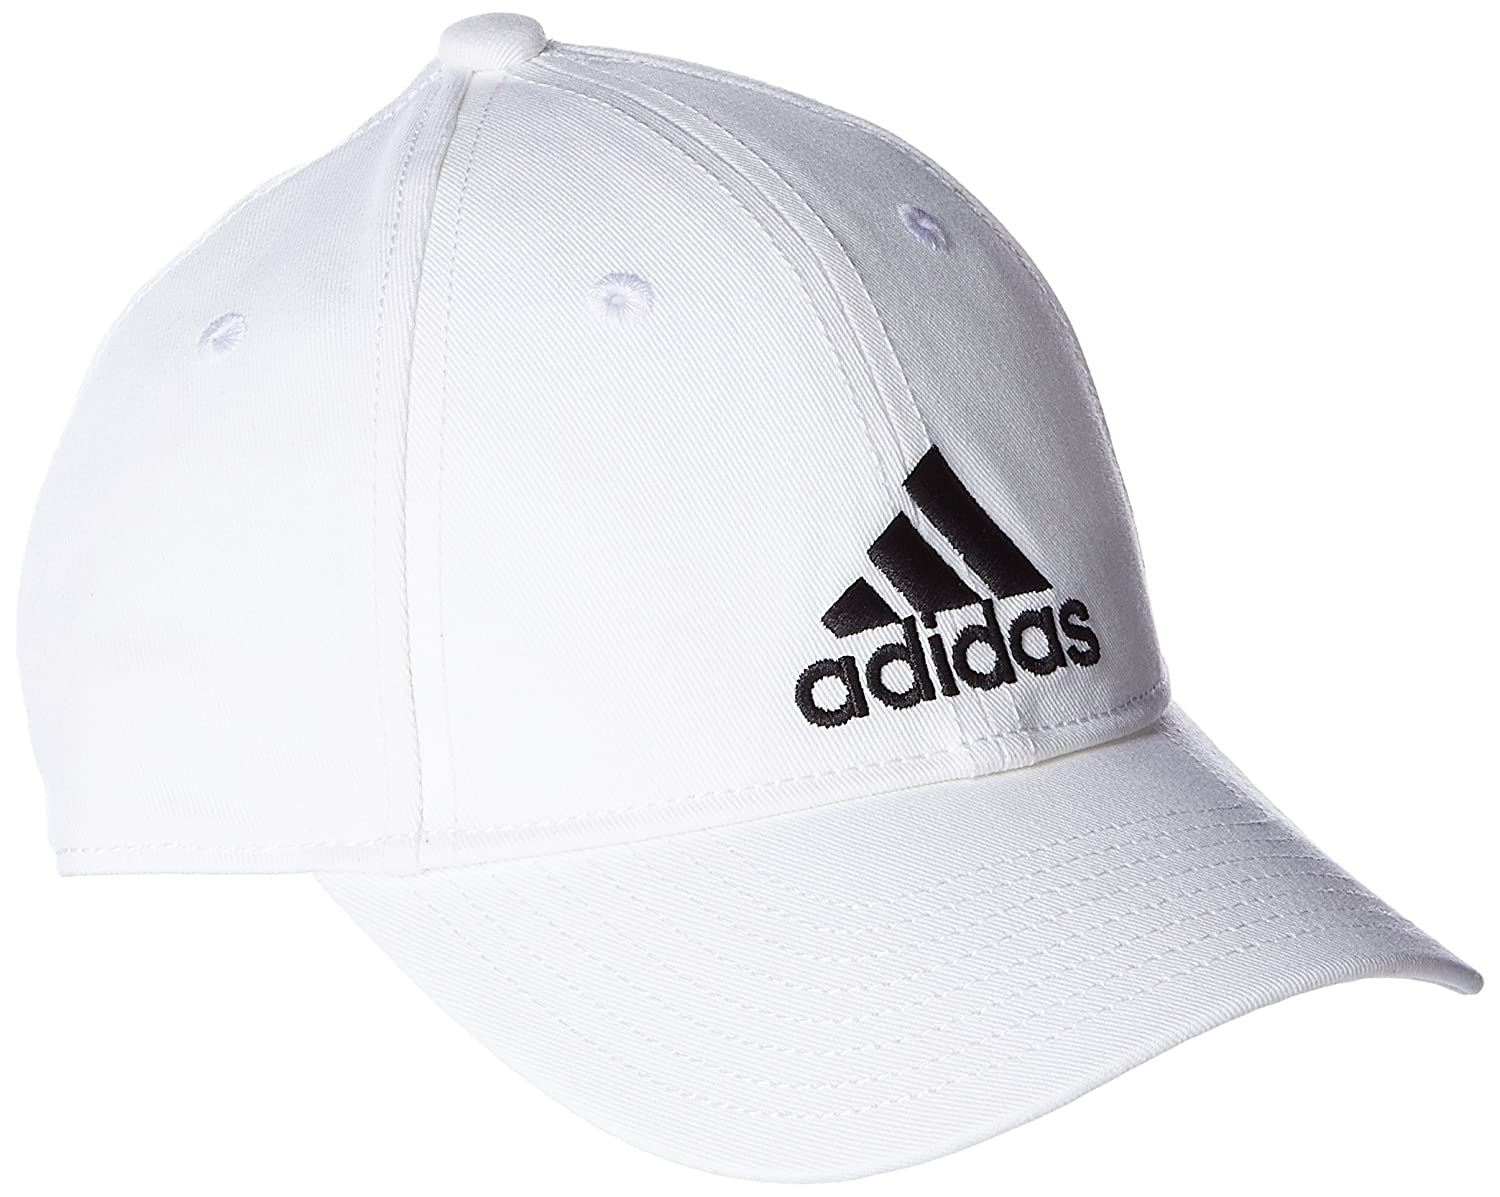 adidas 6p Cotton Cap  Amazon.co.uk  Sports   Outdoors 613e39084dc2